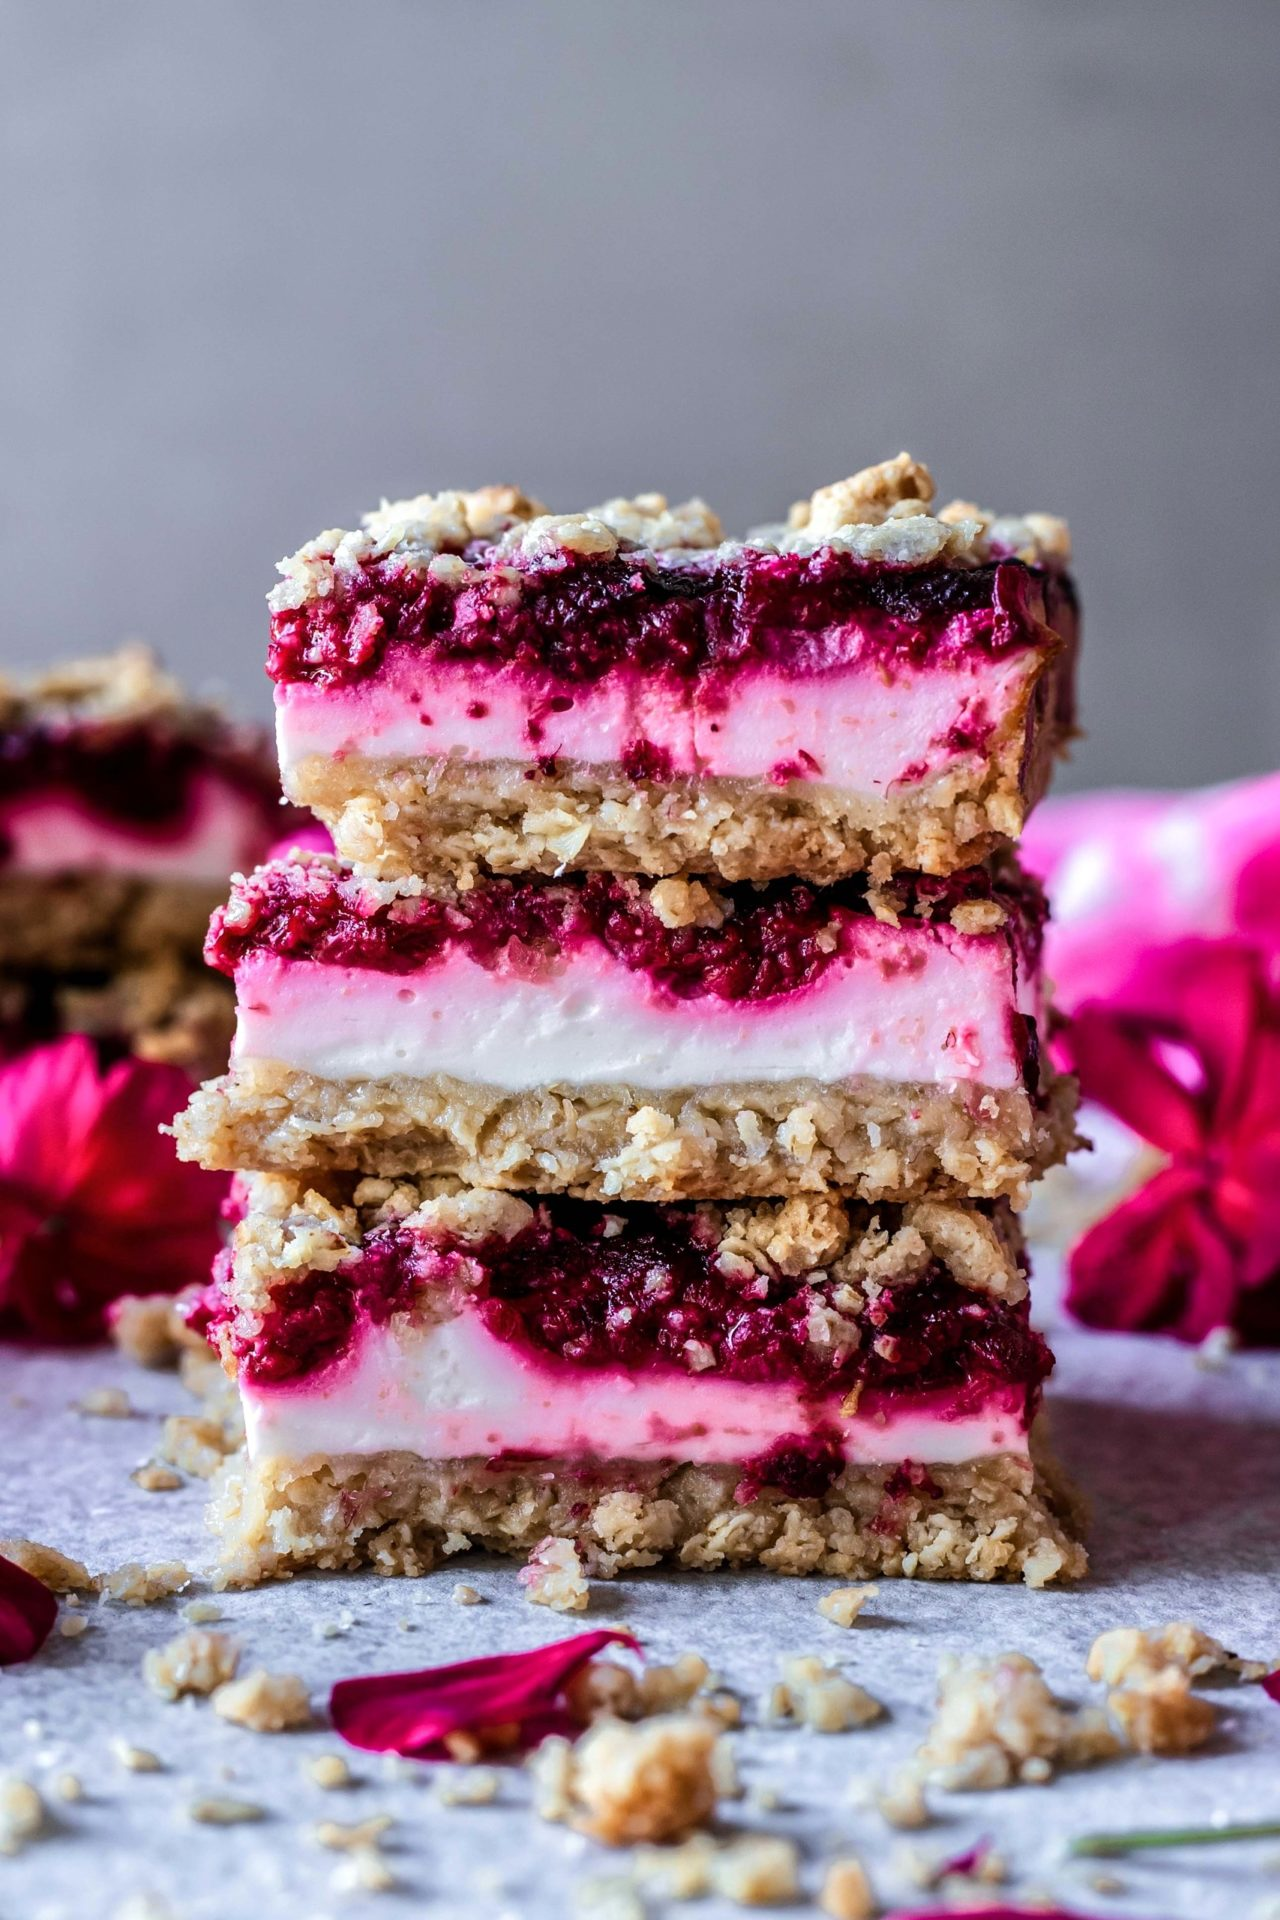 These Gluten-Free Raspberry Yogurt Bars are simple to make, fruity, perfectly sweetened, refreshing, and just so good!